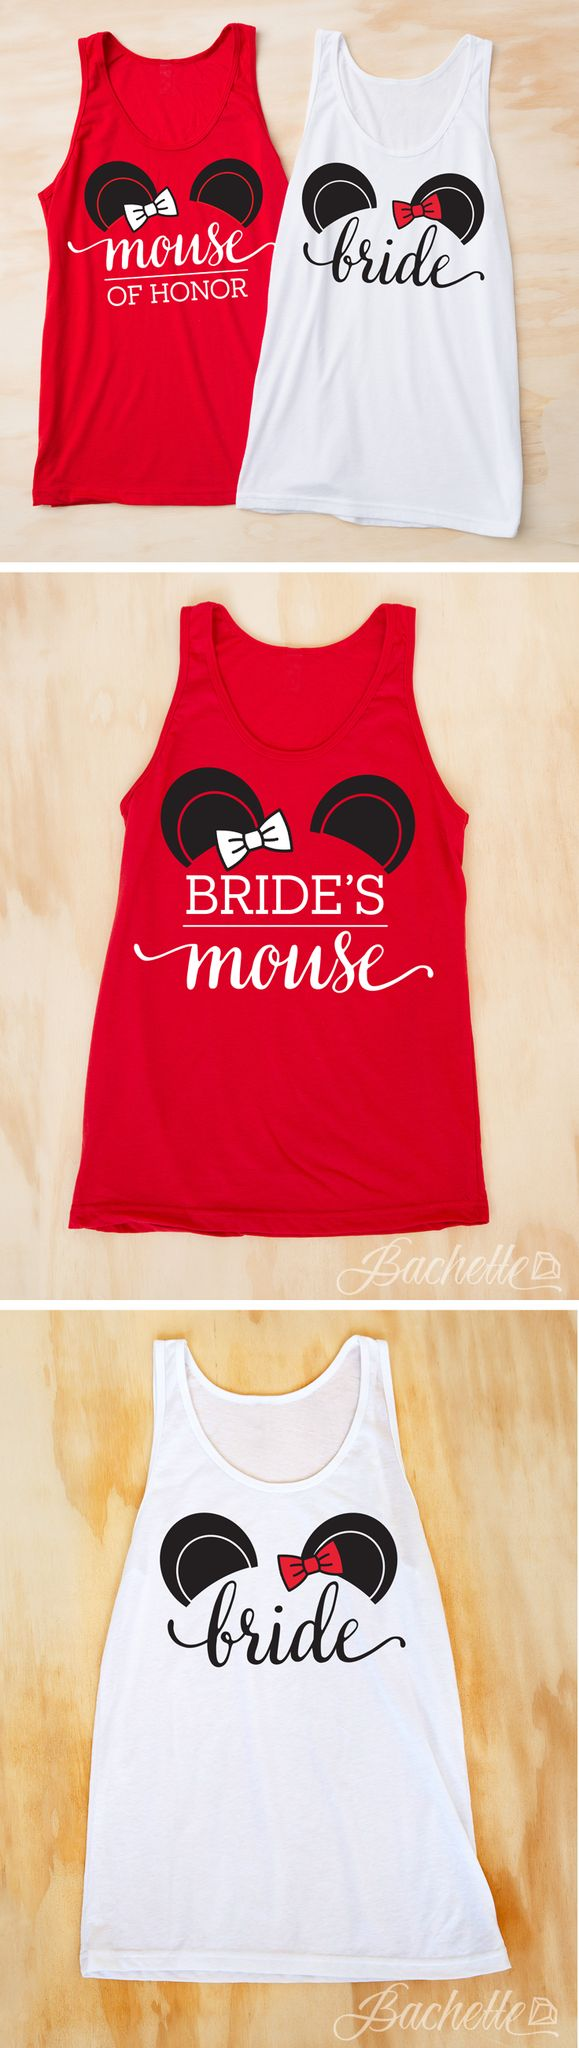 "Adorable ""Bride's Mouse"" and ""Mouse of Honor"" mouse ears bachelorette party shirts! SO CUTE and perfect for a bachelorette party!"